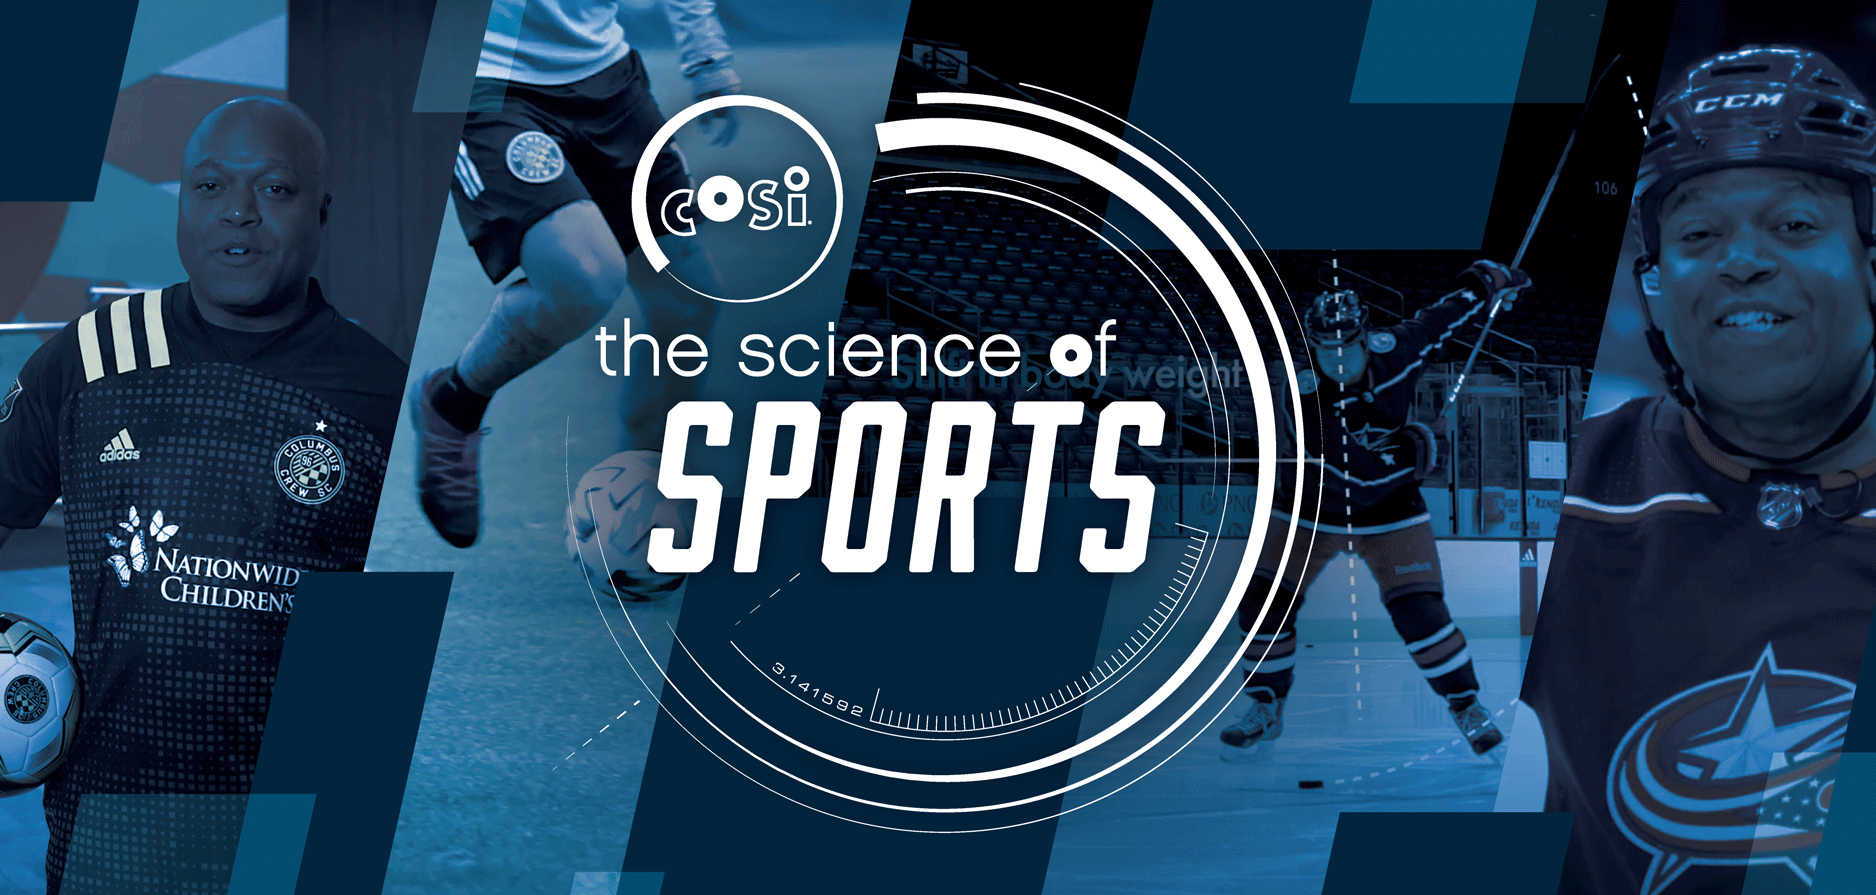 The Science of Sports